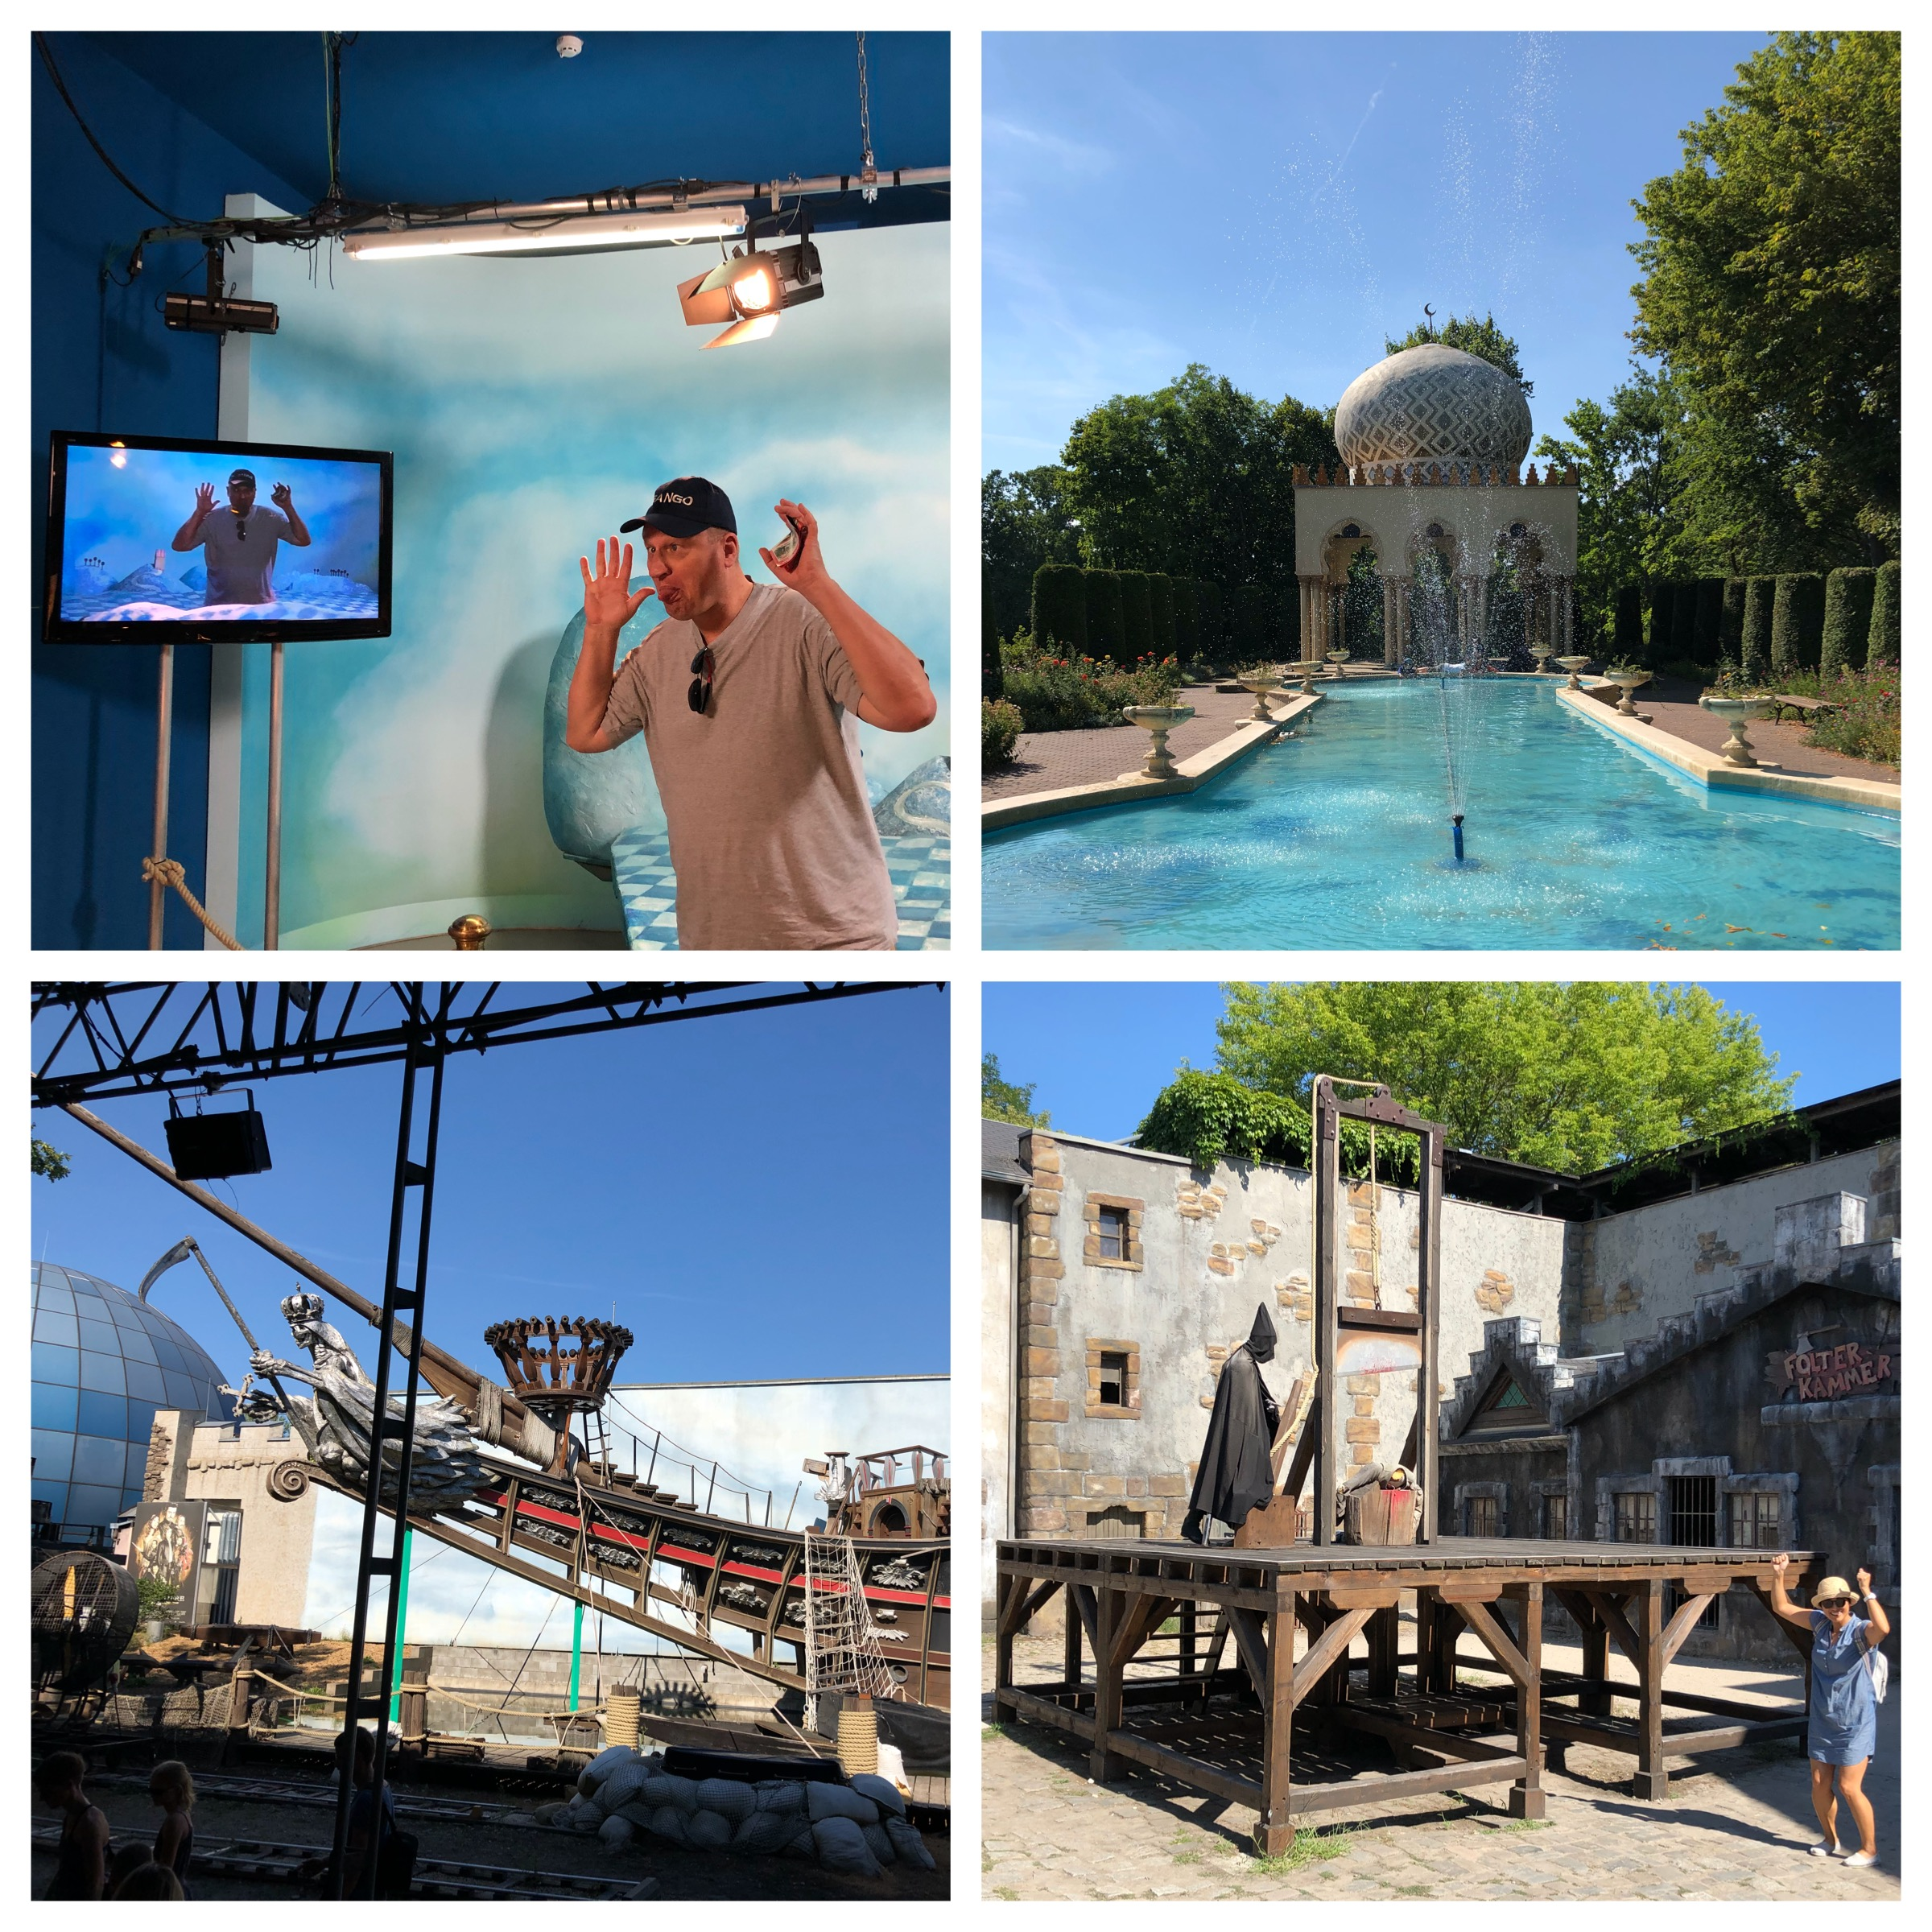 Top and clockwise: Christoph learning about film sets, the garden from a TV story, a typical scene from the Middle Ages, the set for the Three Musketeers show.